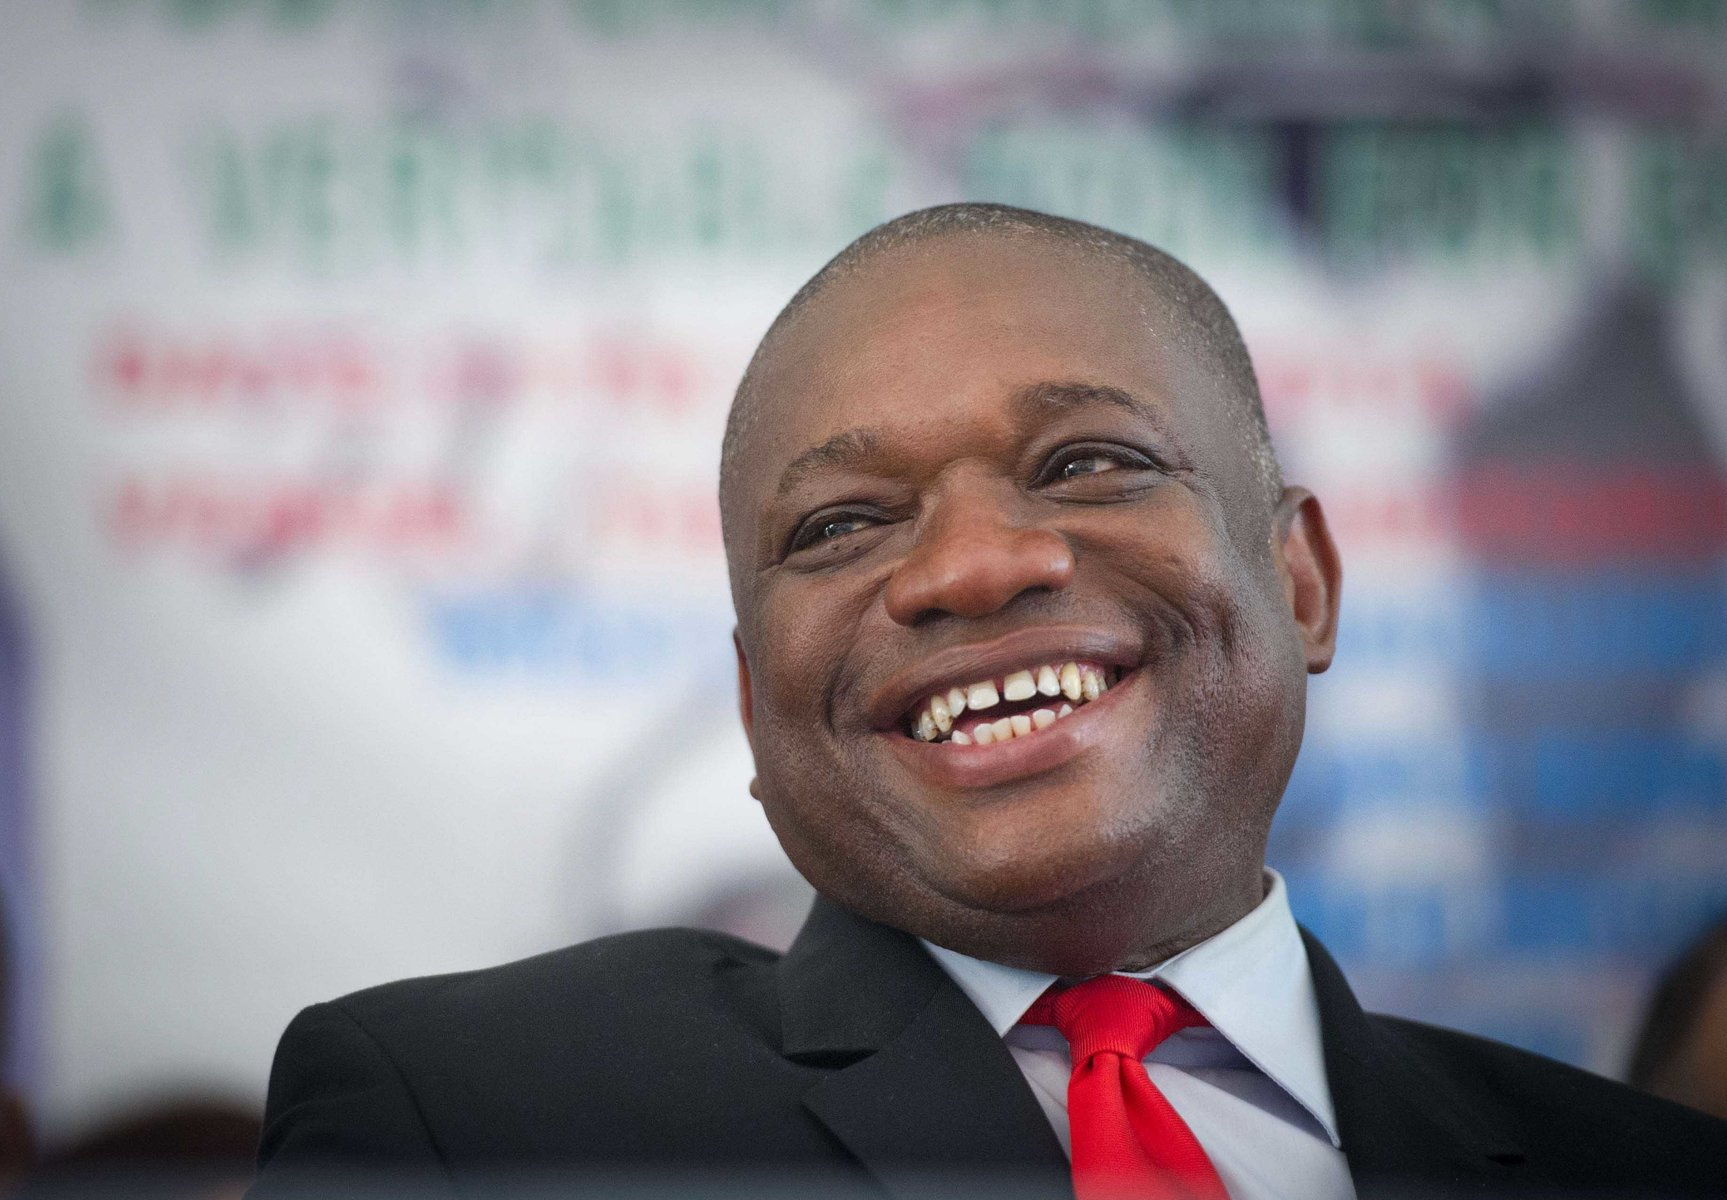 Kalu shares a warm smile while being interviewed at a press converence.